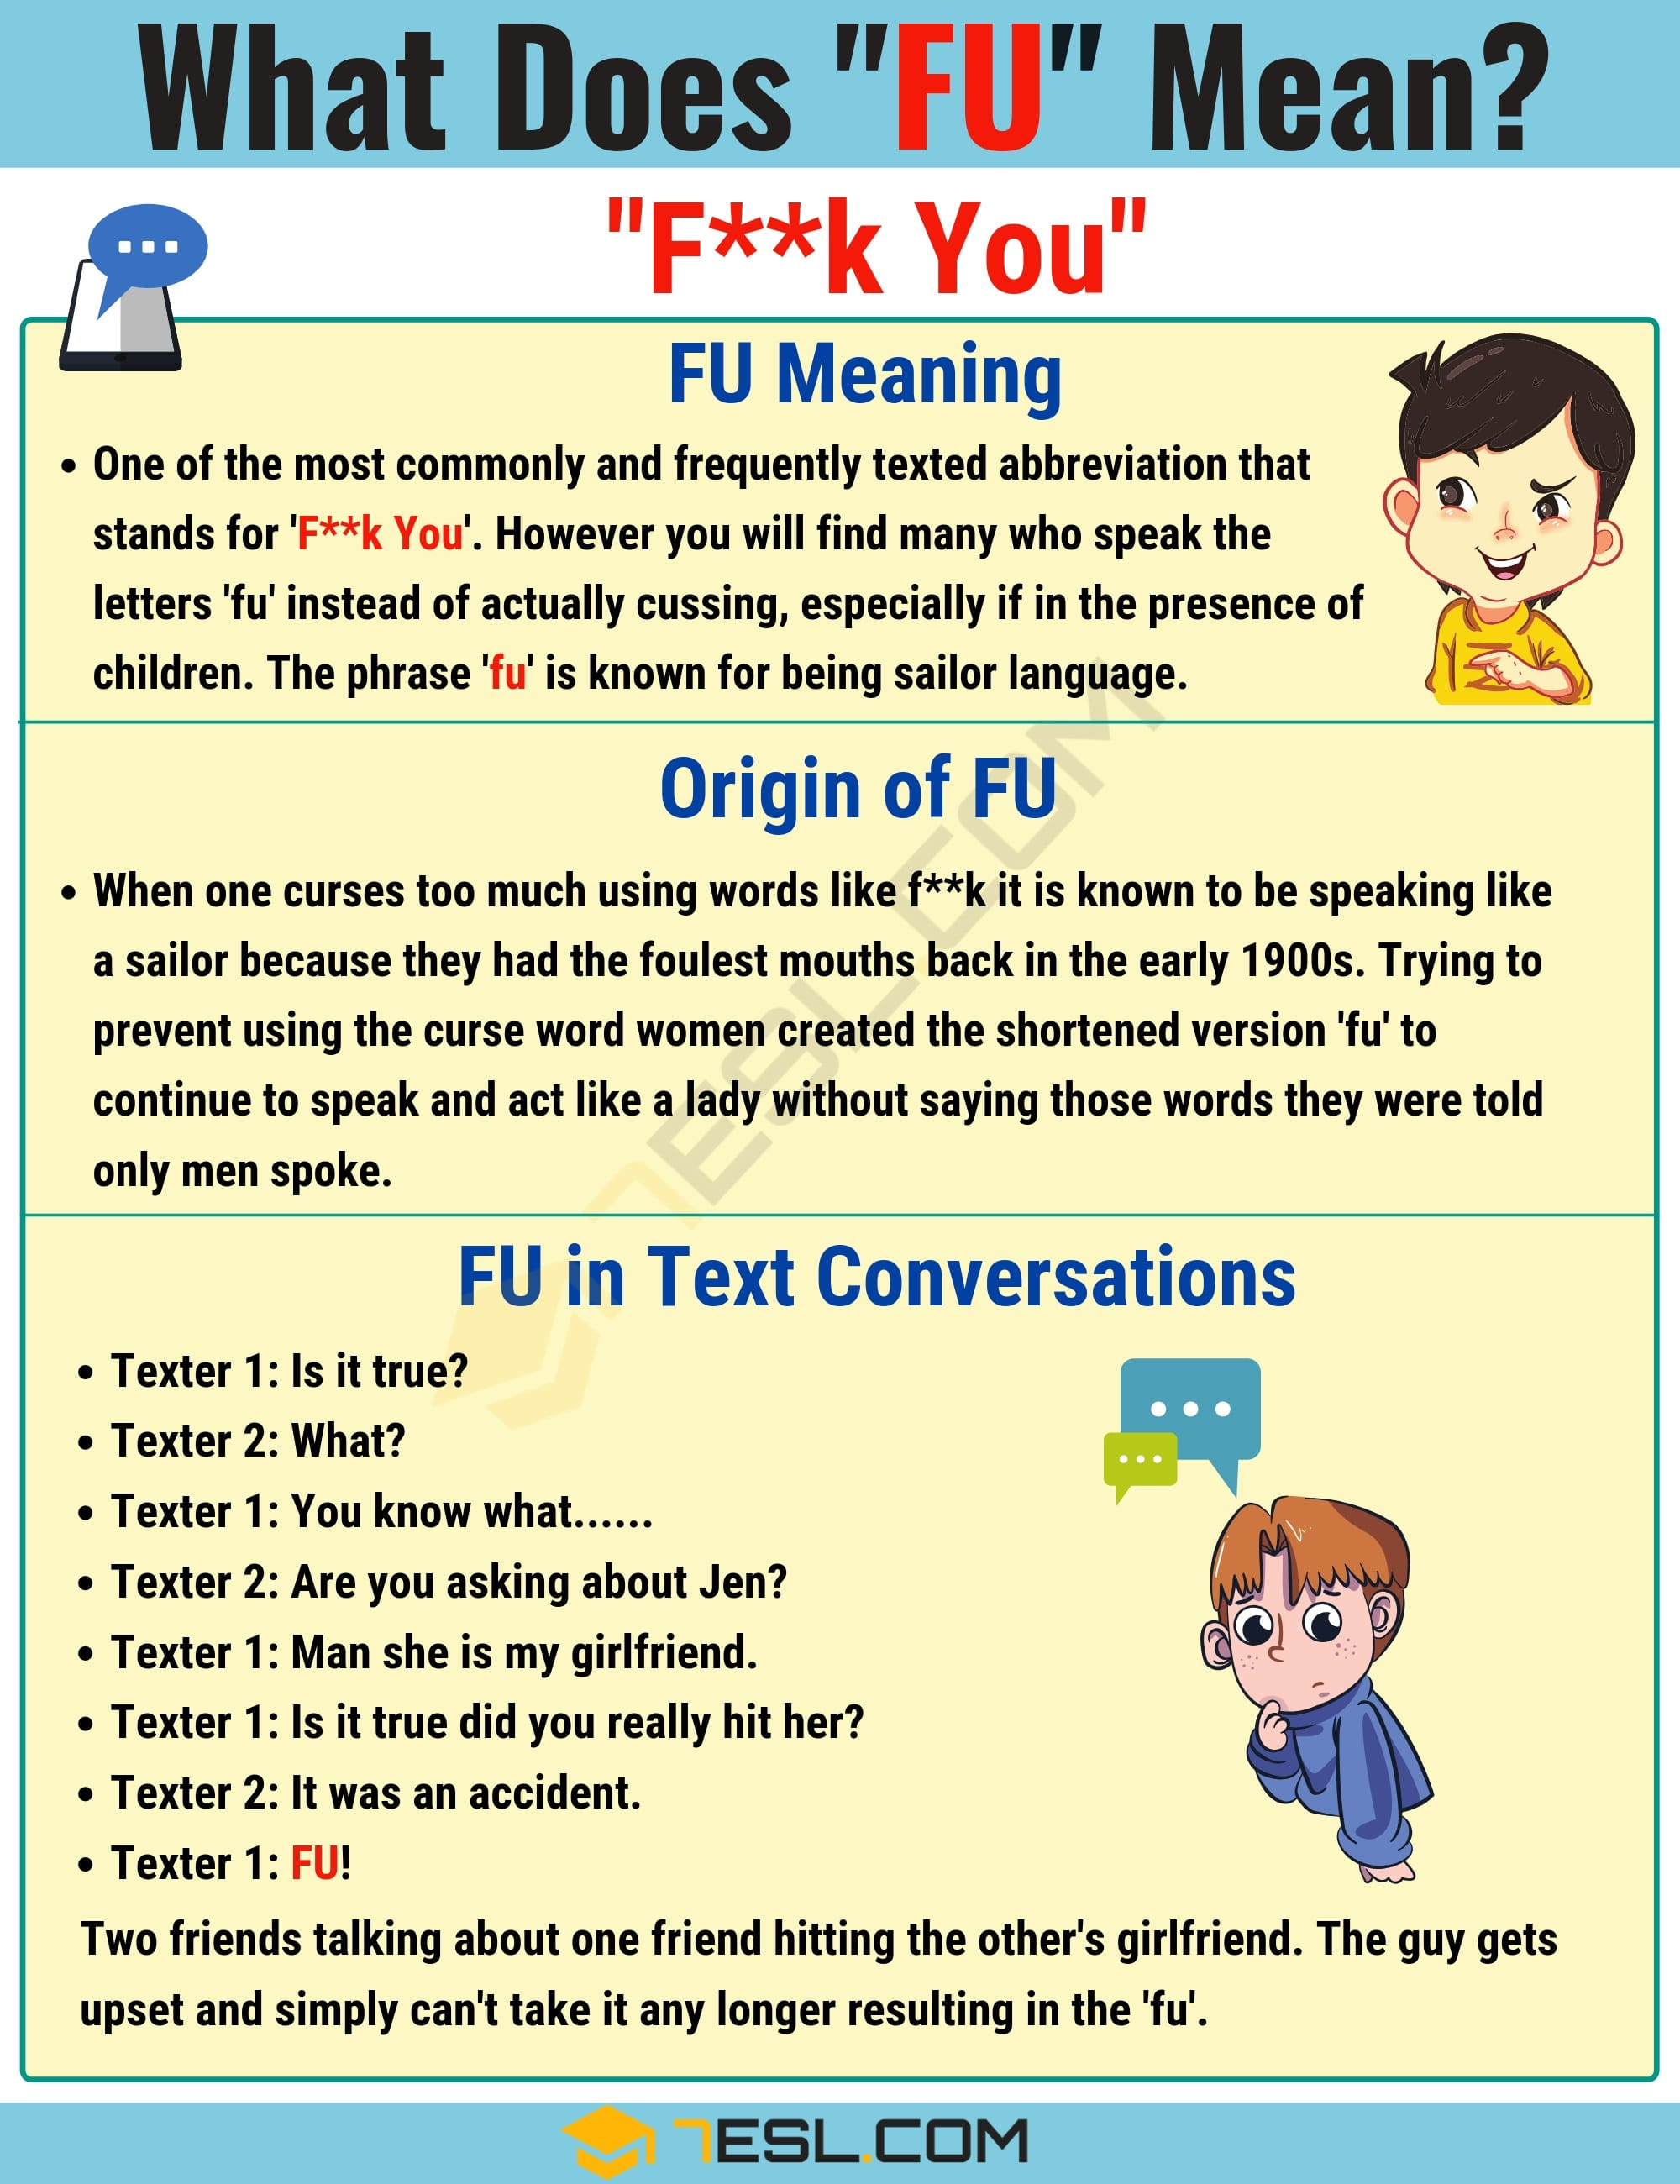 FU Meaning: What Does FU Mean and Stand for? 2